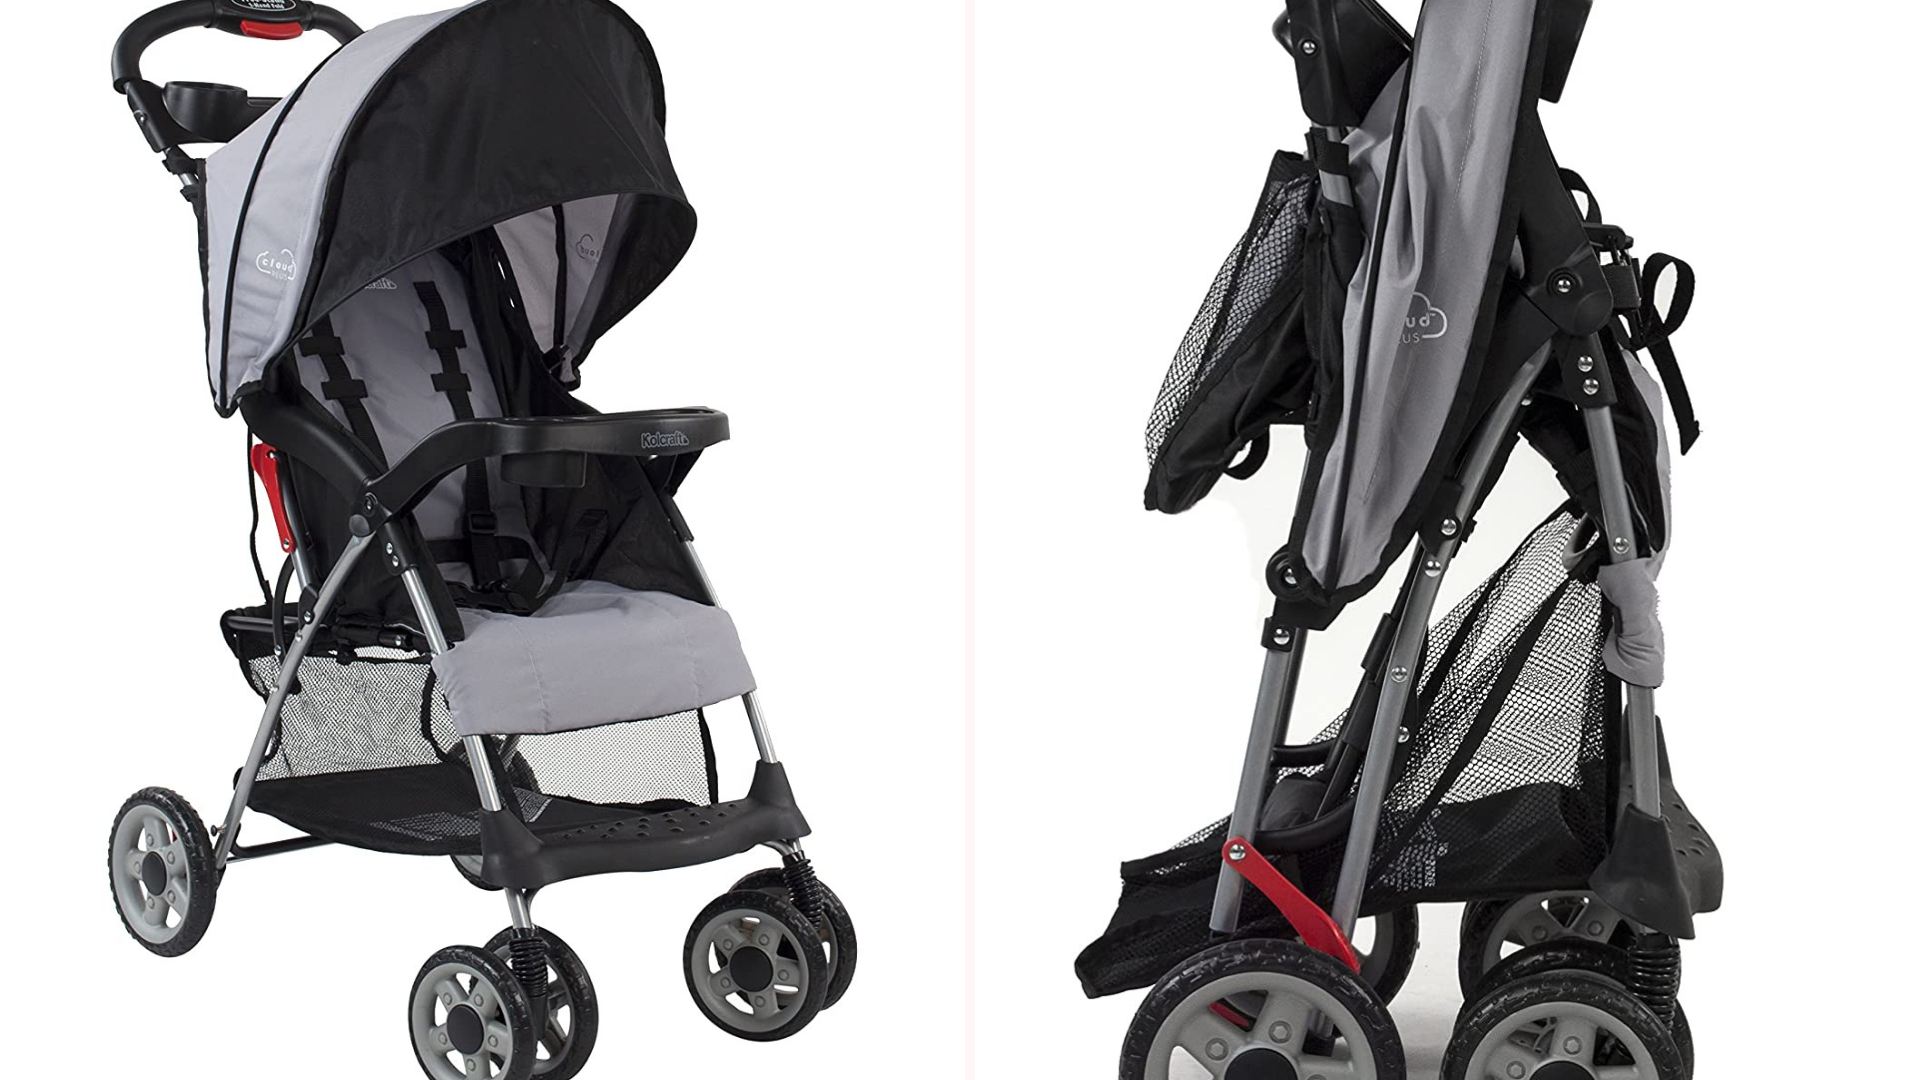 A Kolcraft foldable stroller in the opena nd closed positions.